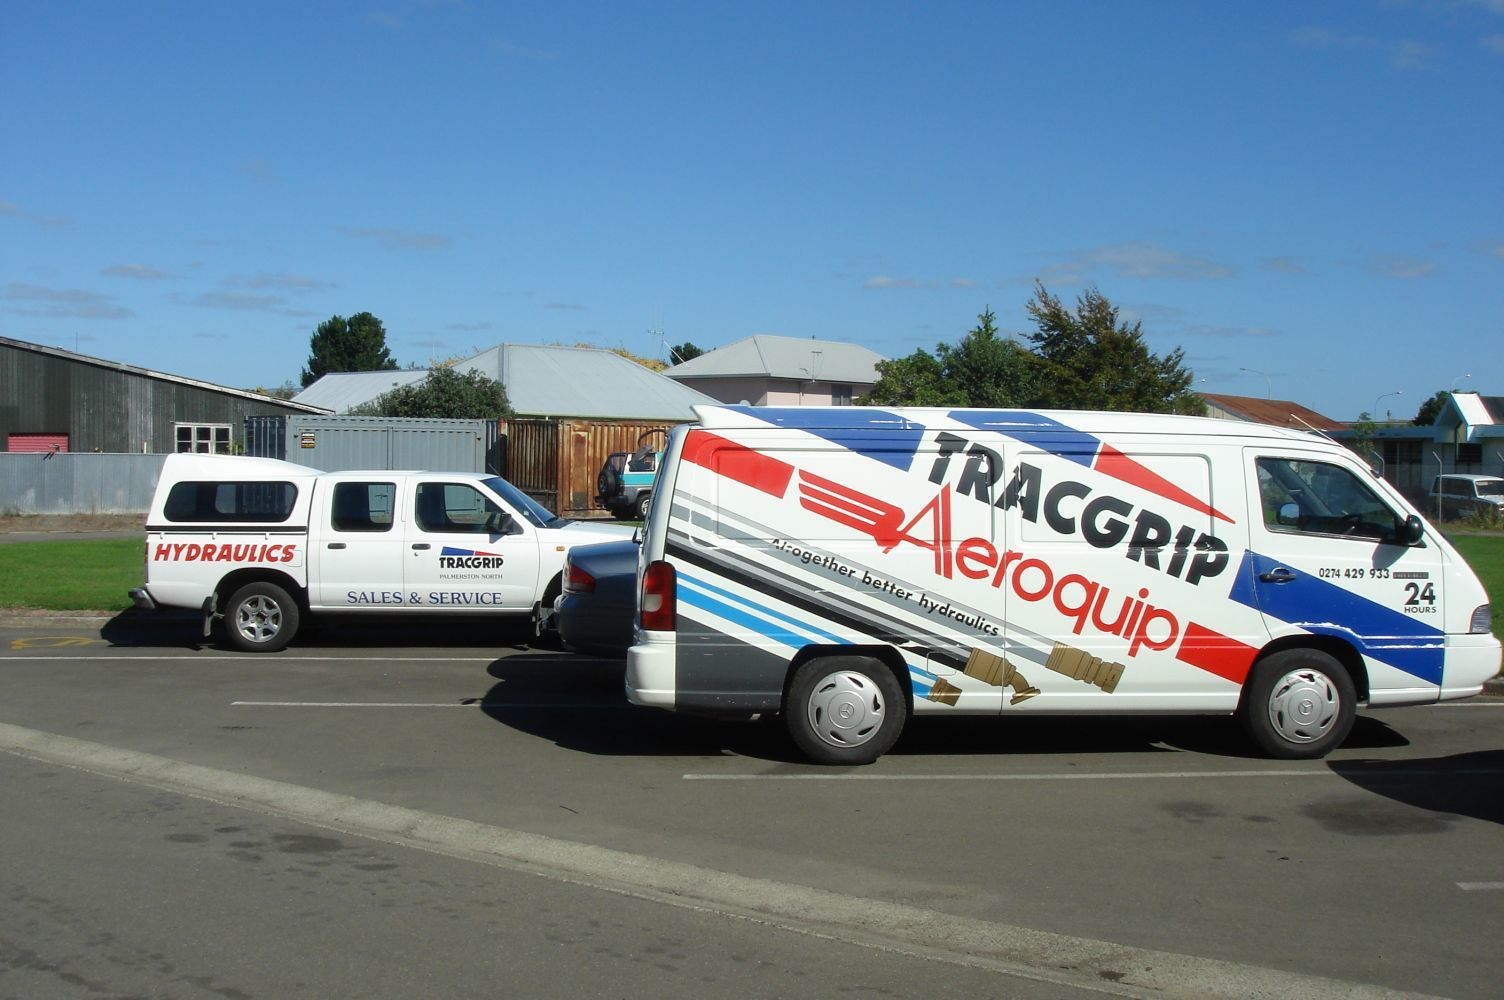 Hydraulic services in New Zealand